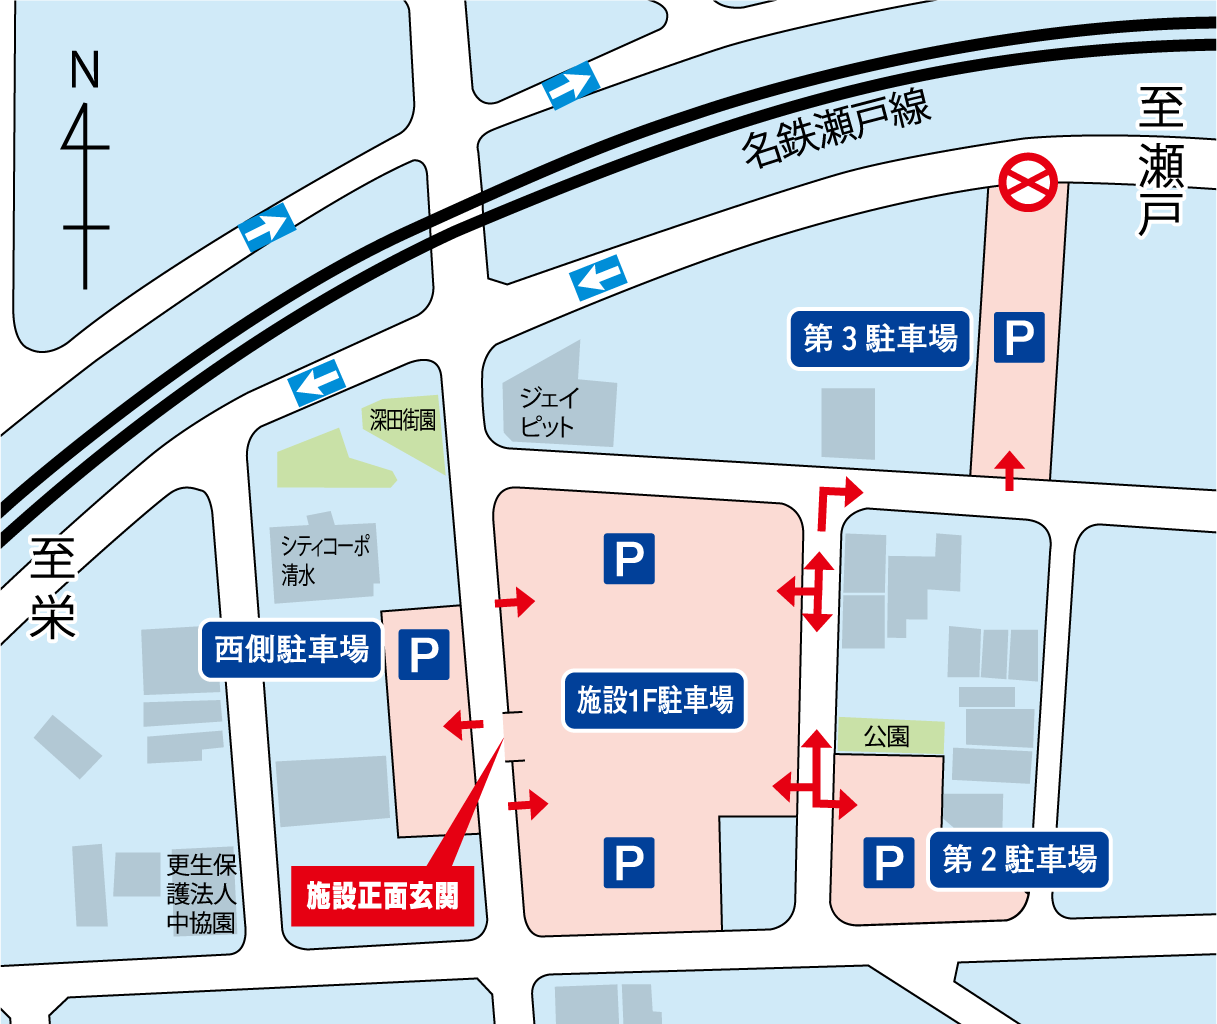 ahpf_parking_map